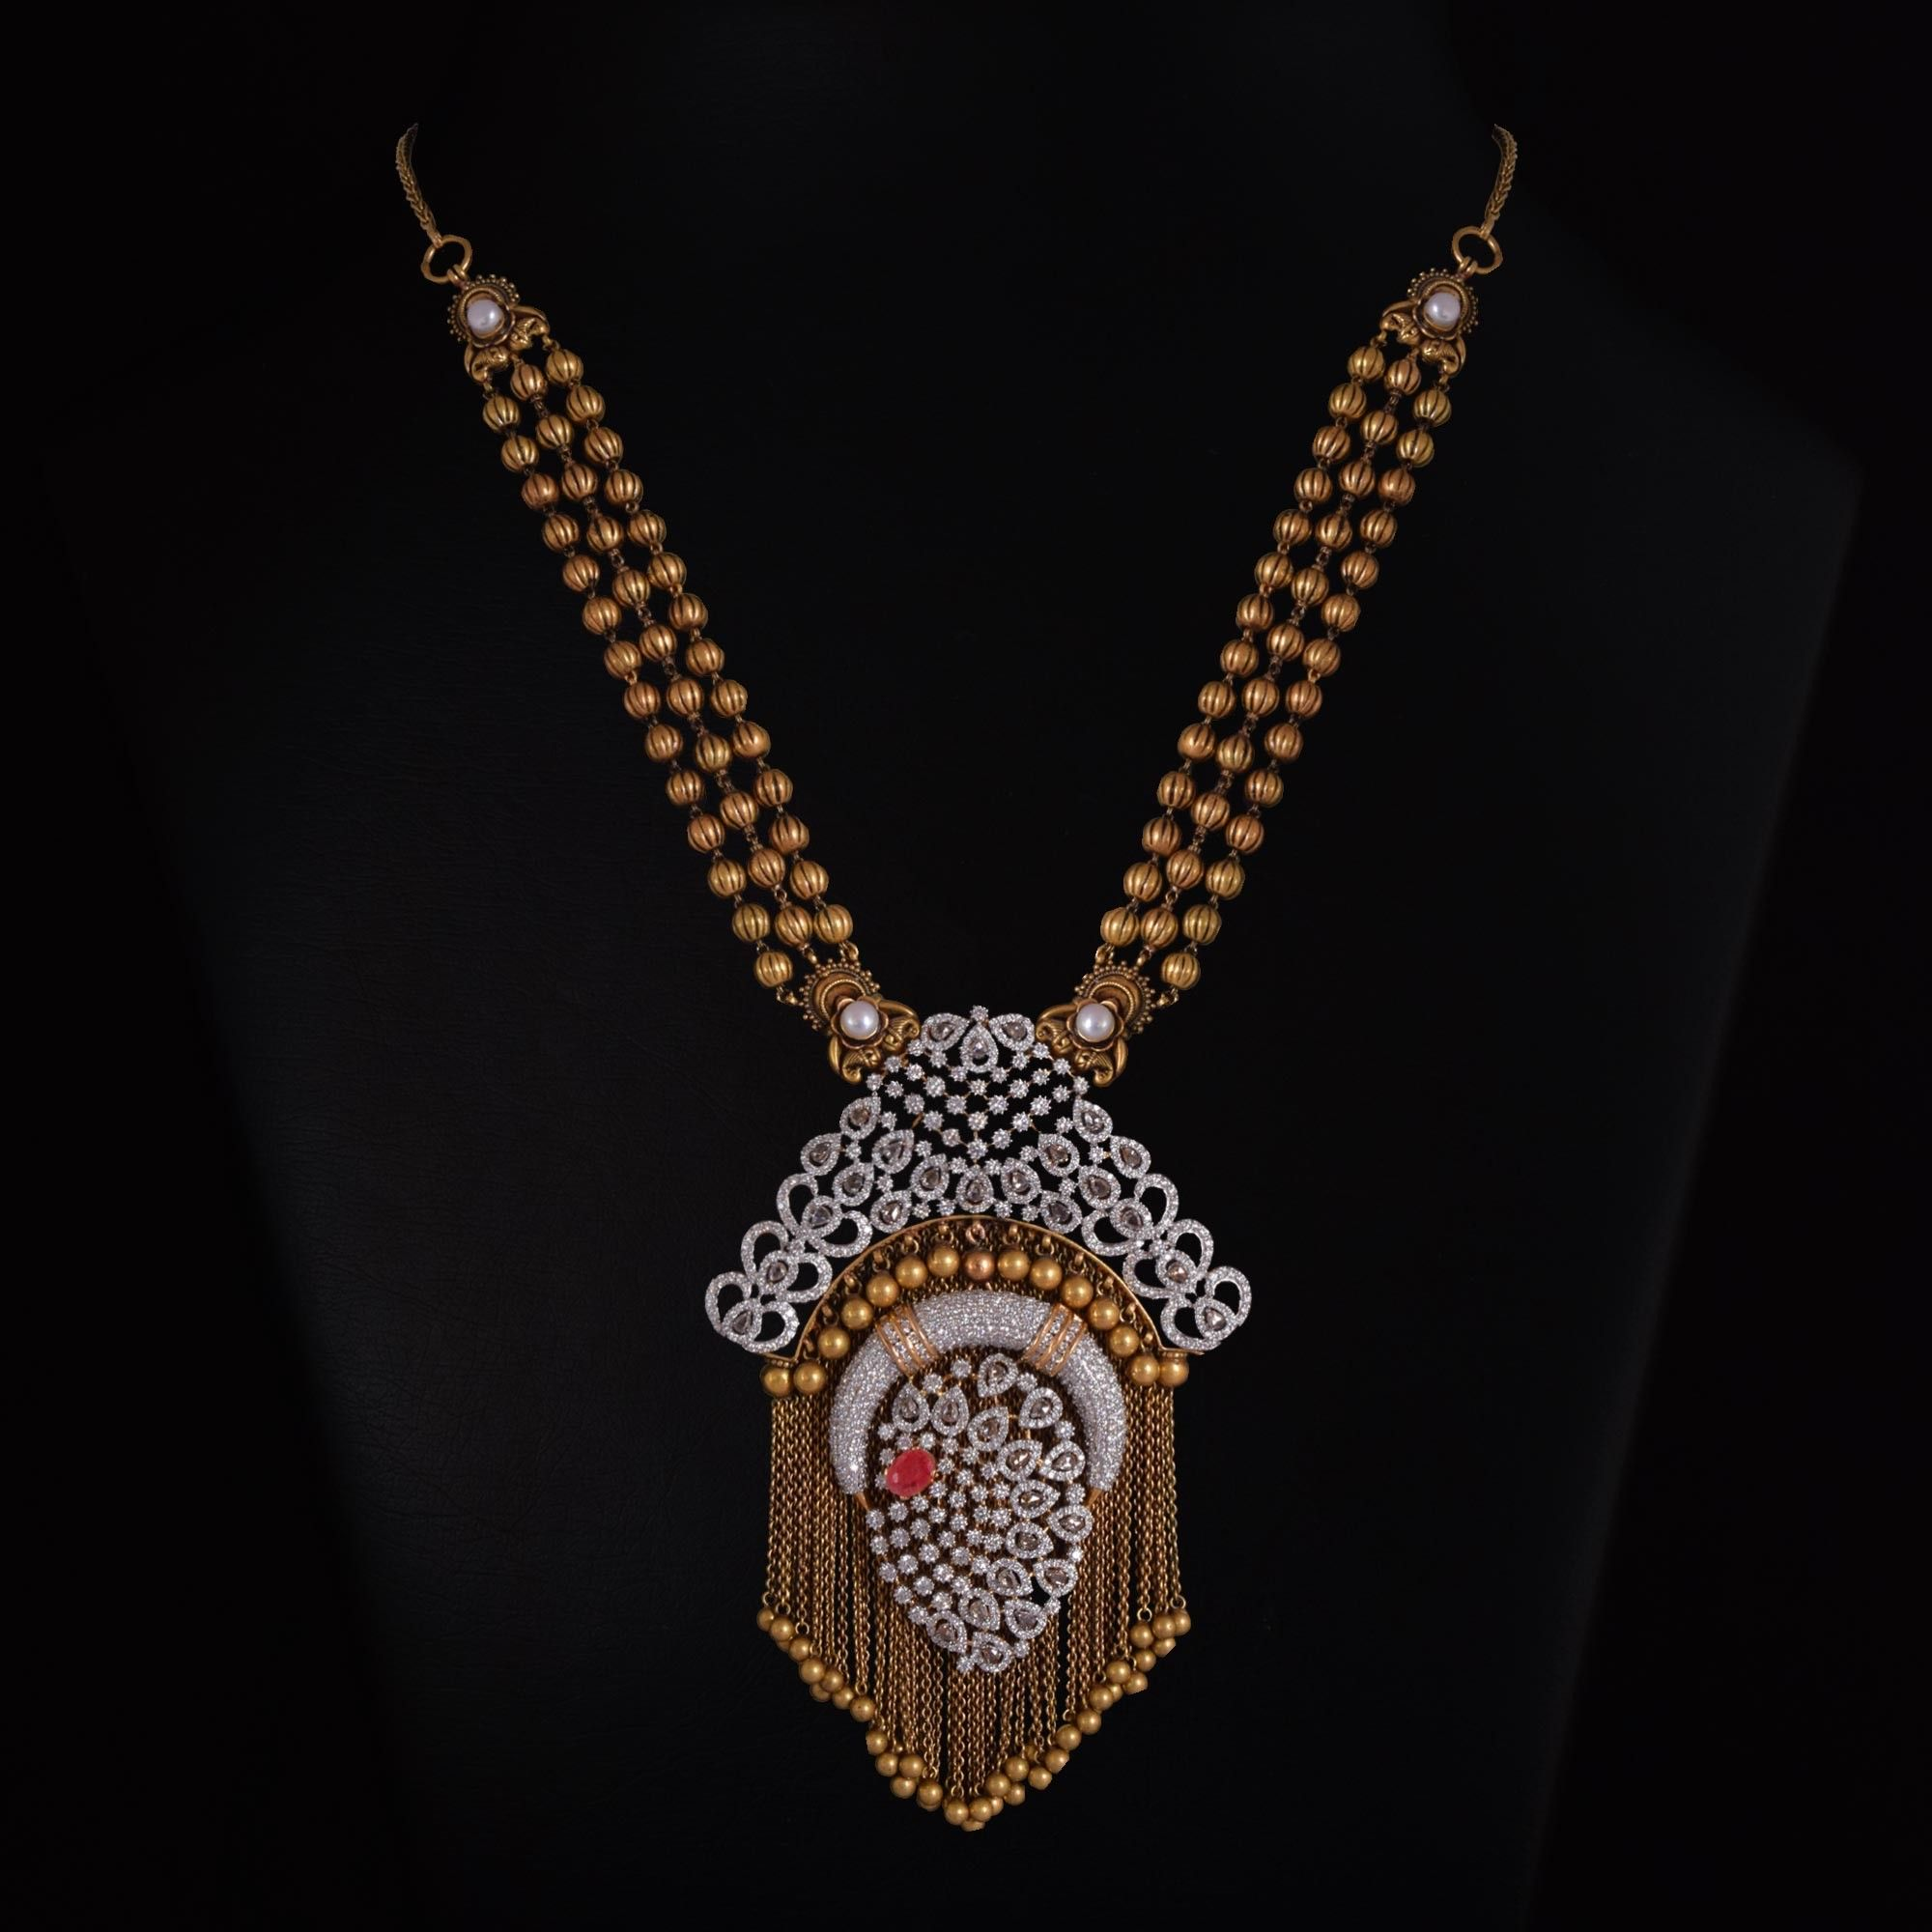 Vummidi bangaru jewellers gold jewelry in pinterest